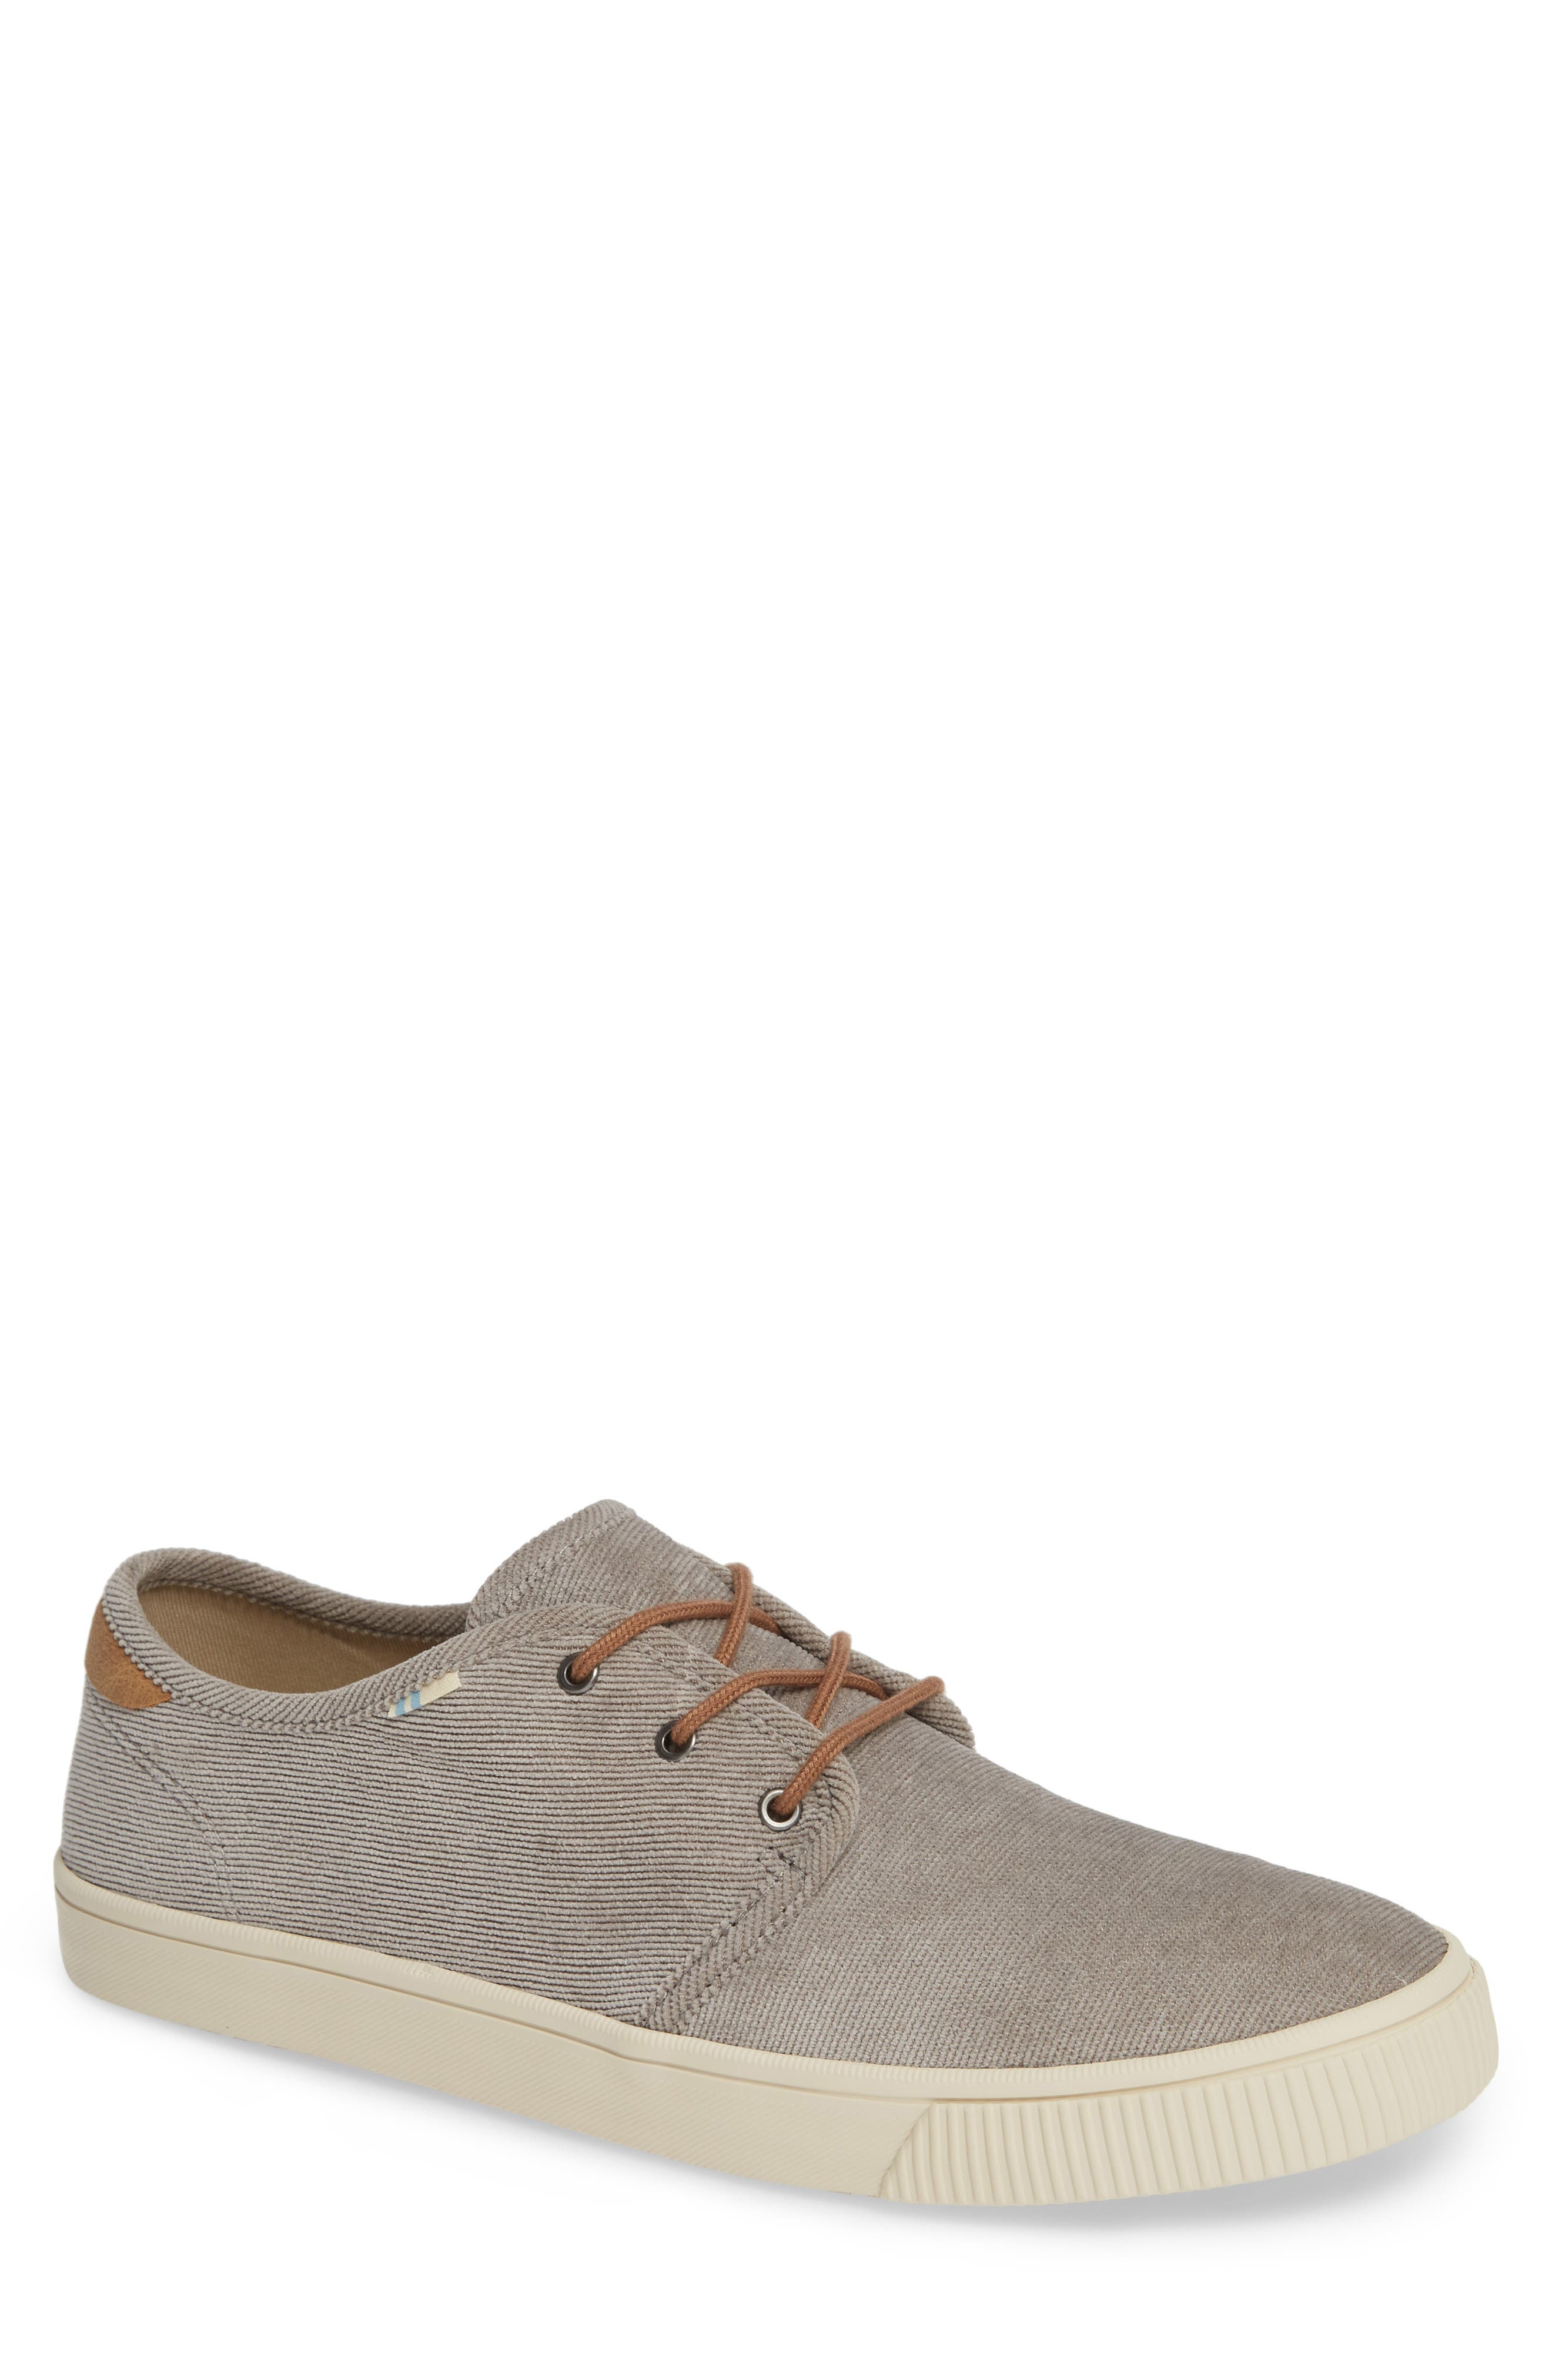 TOMS Carlo Sneaker, Main, color, 020